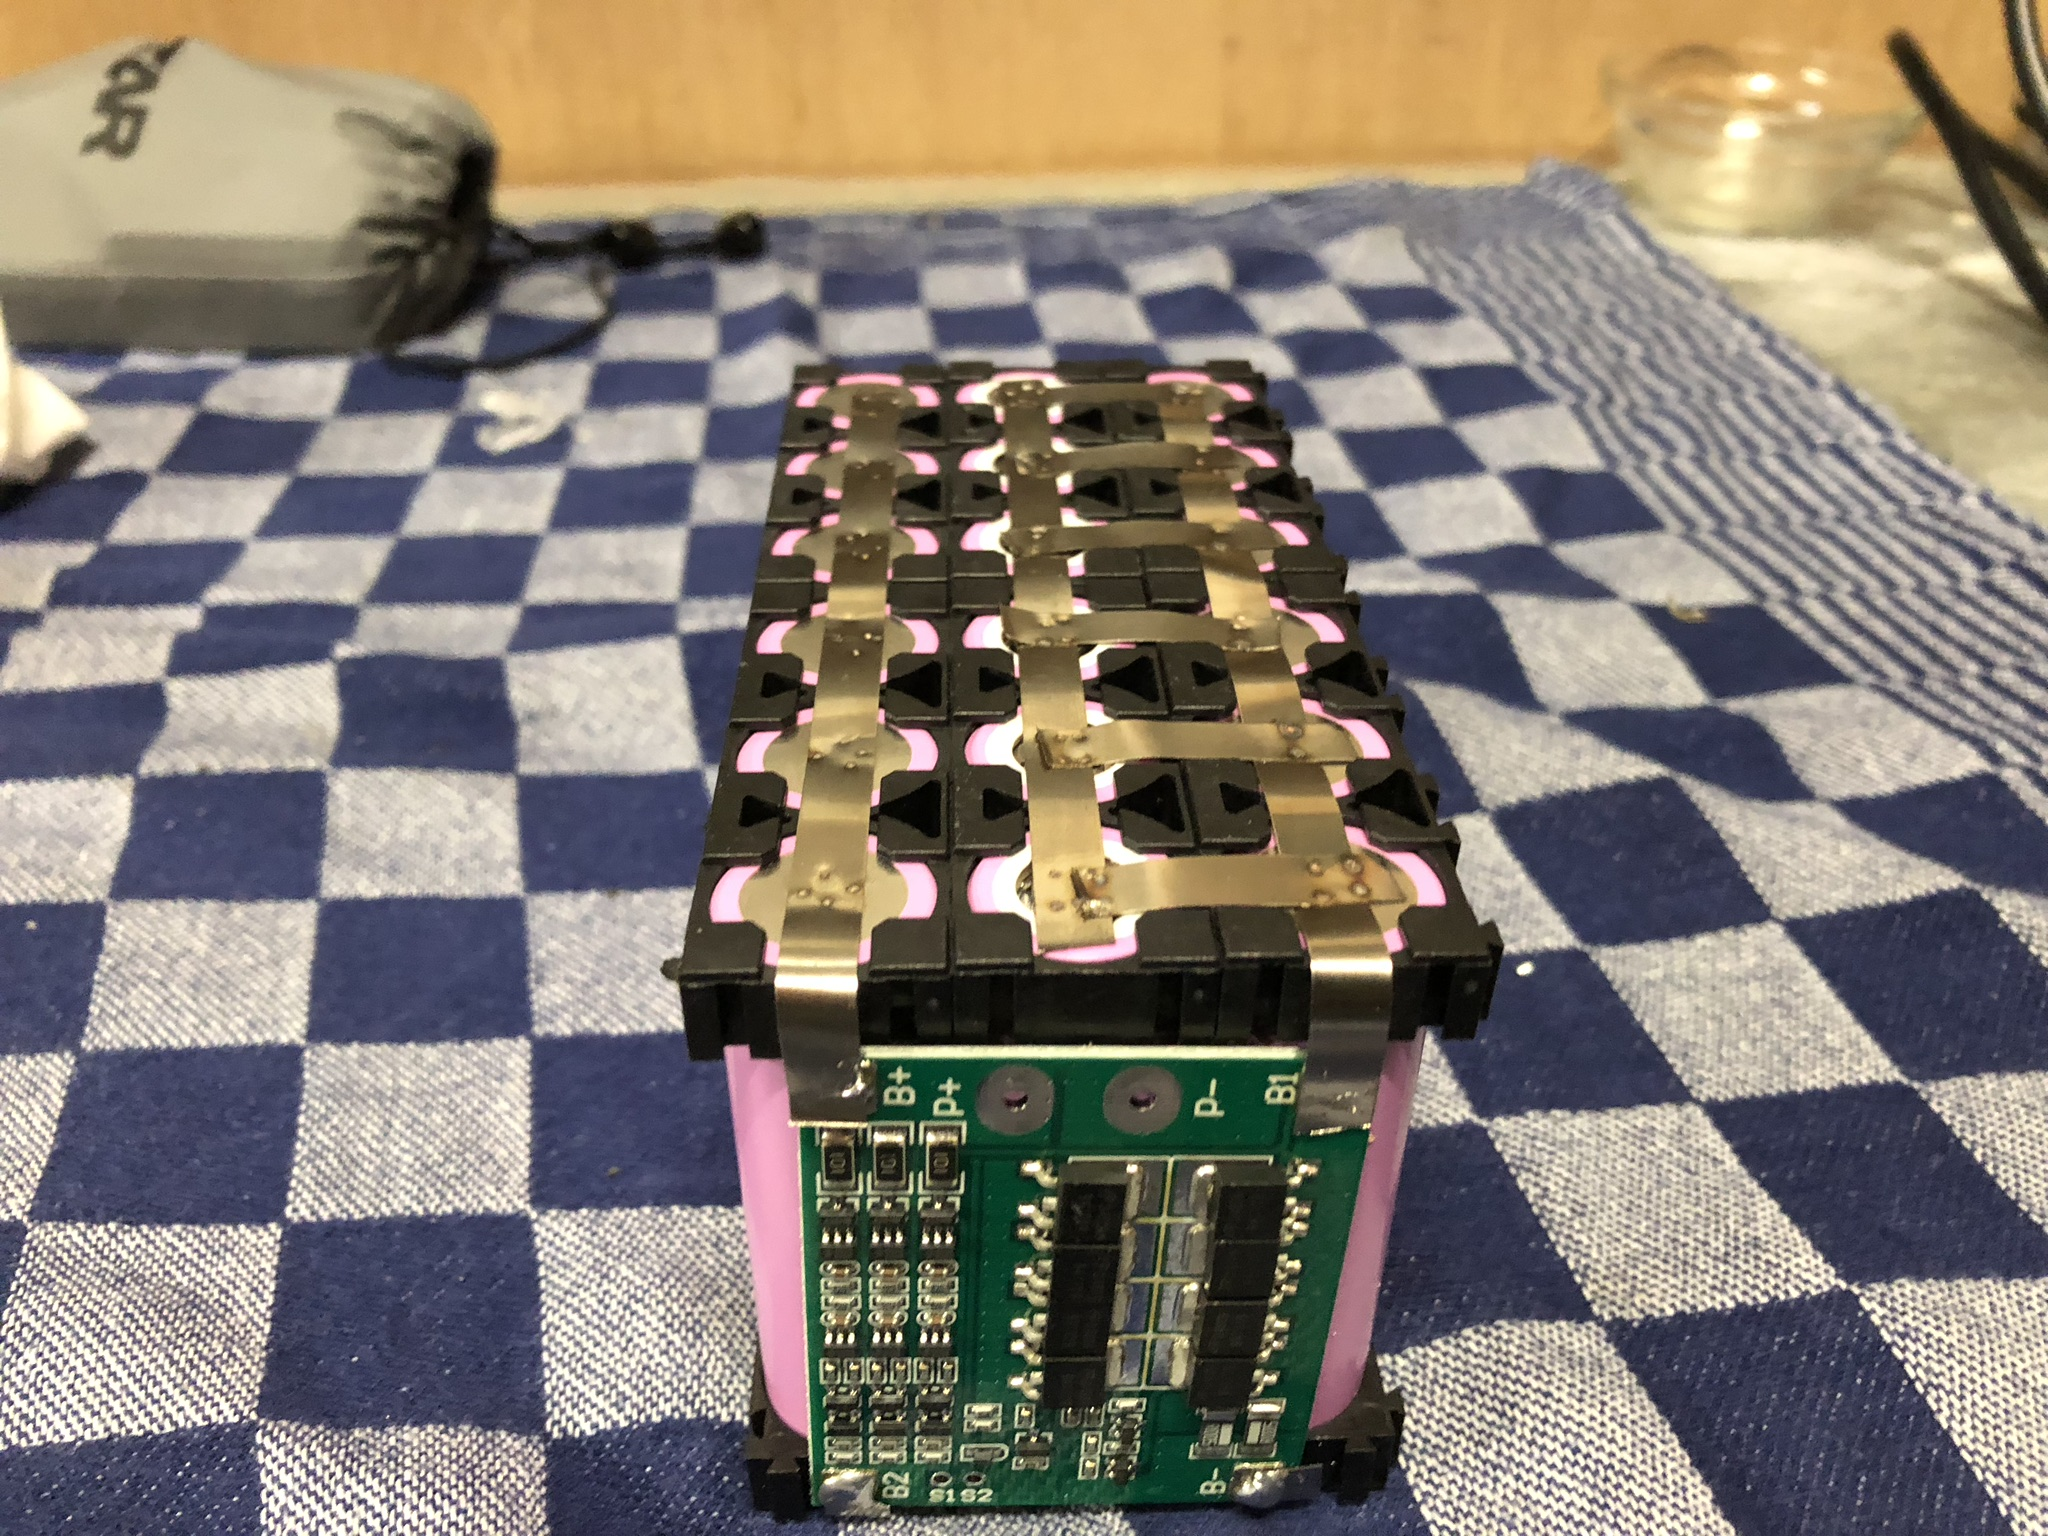 Building a Lithium battery for my electric scooter – Widodh